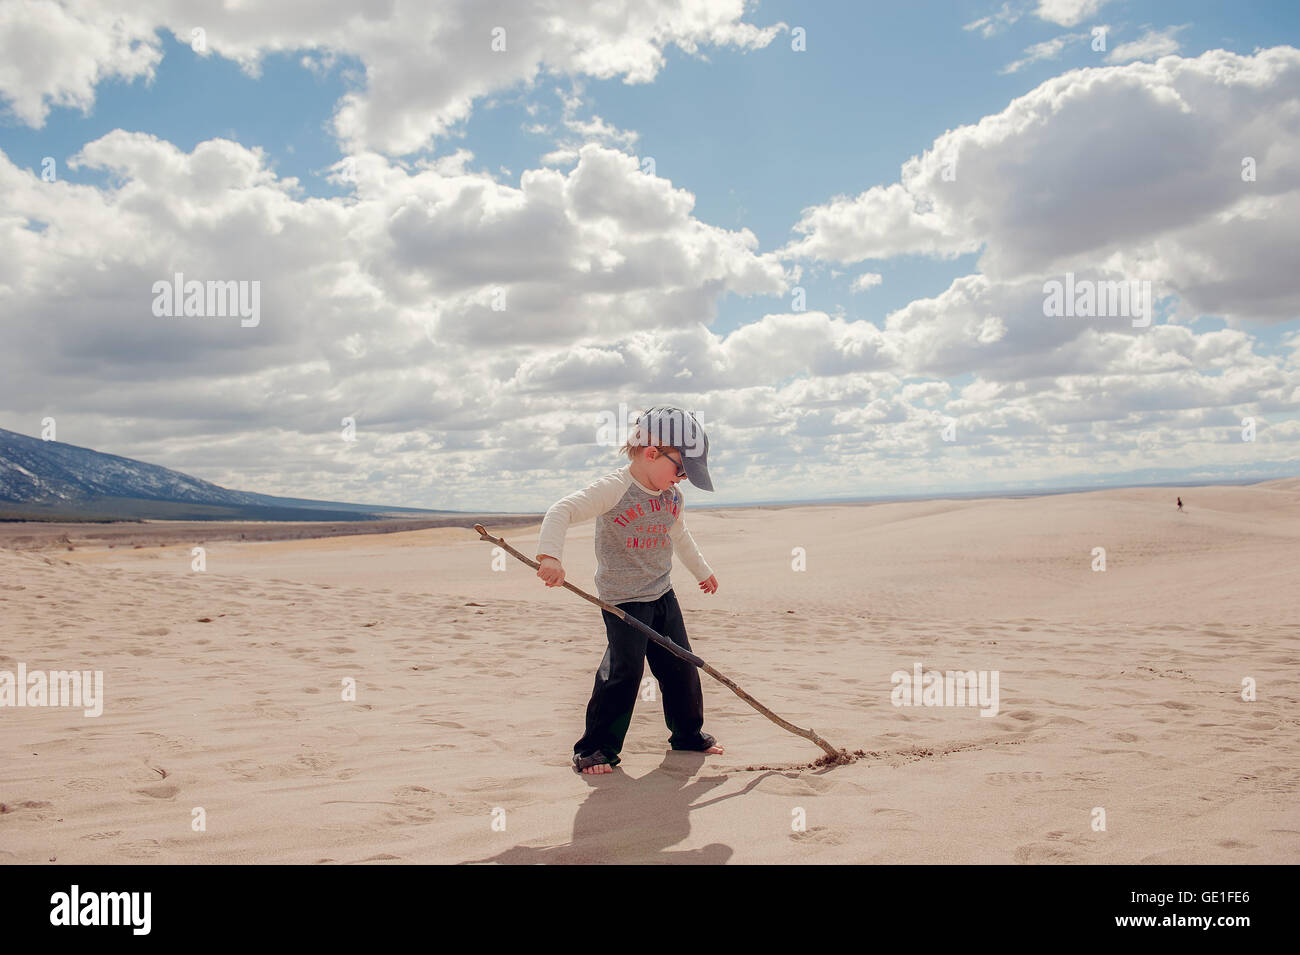 Boy writing in sand with stick, Grand Sand Dunes National Park, Colorado, America, USA - Stock Image